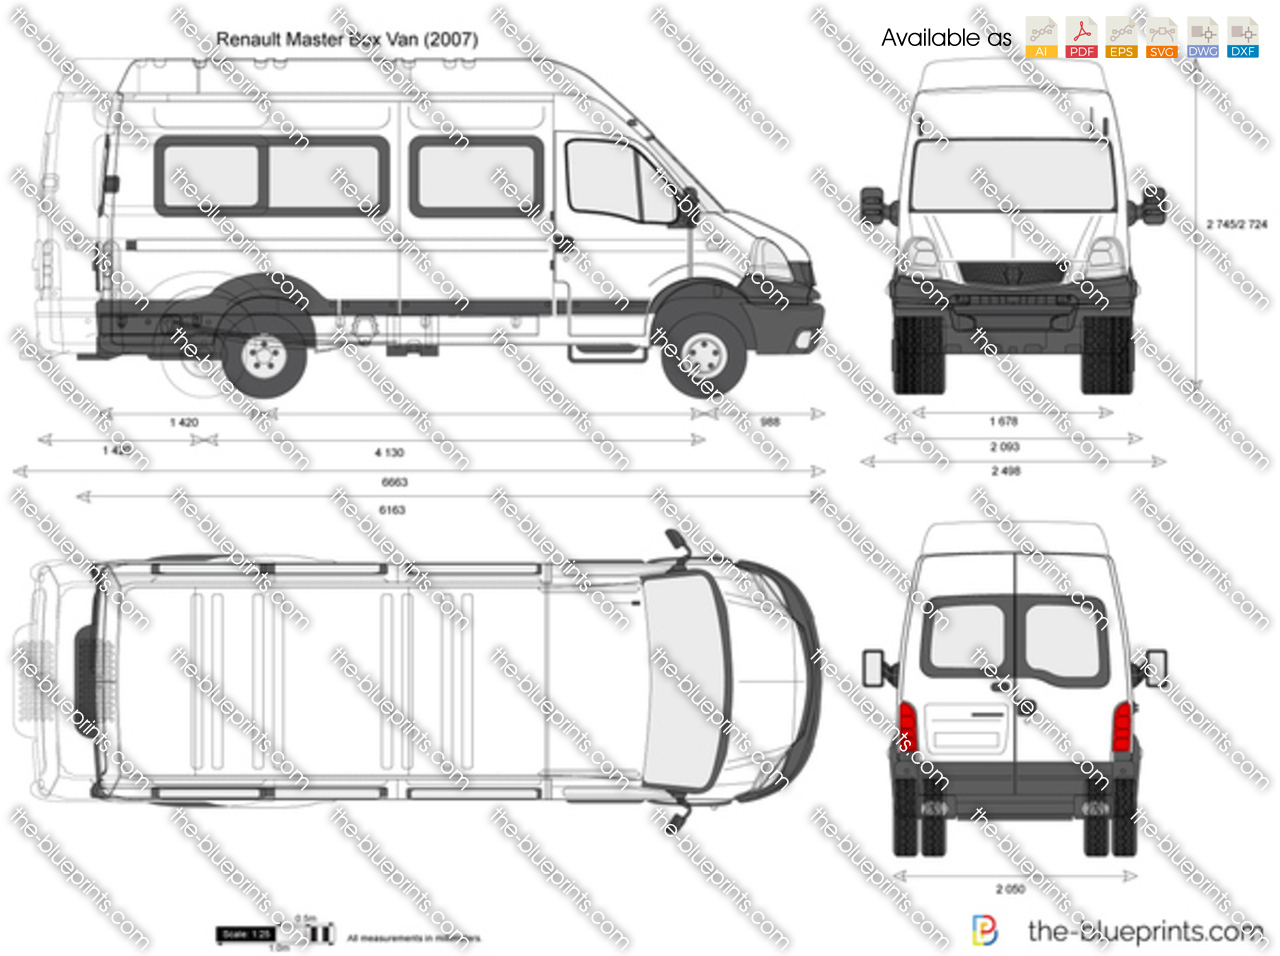 renault master box van vector drawing